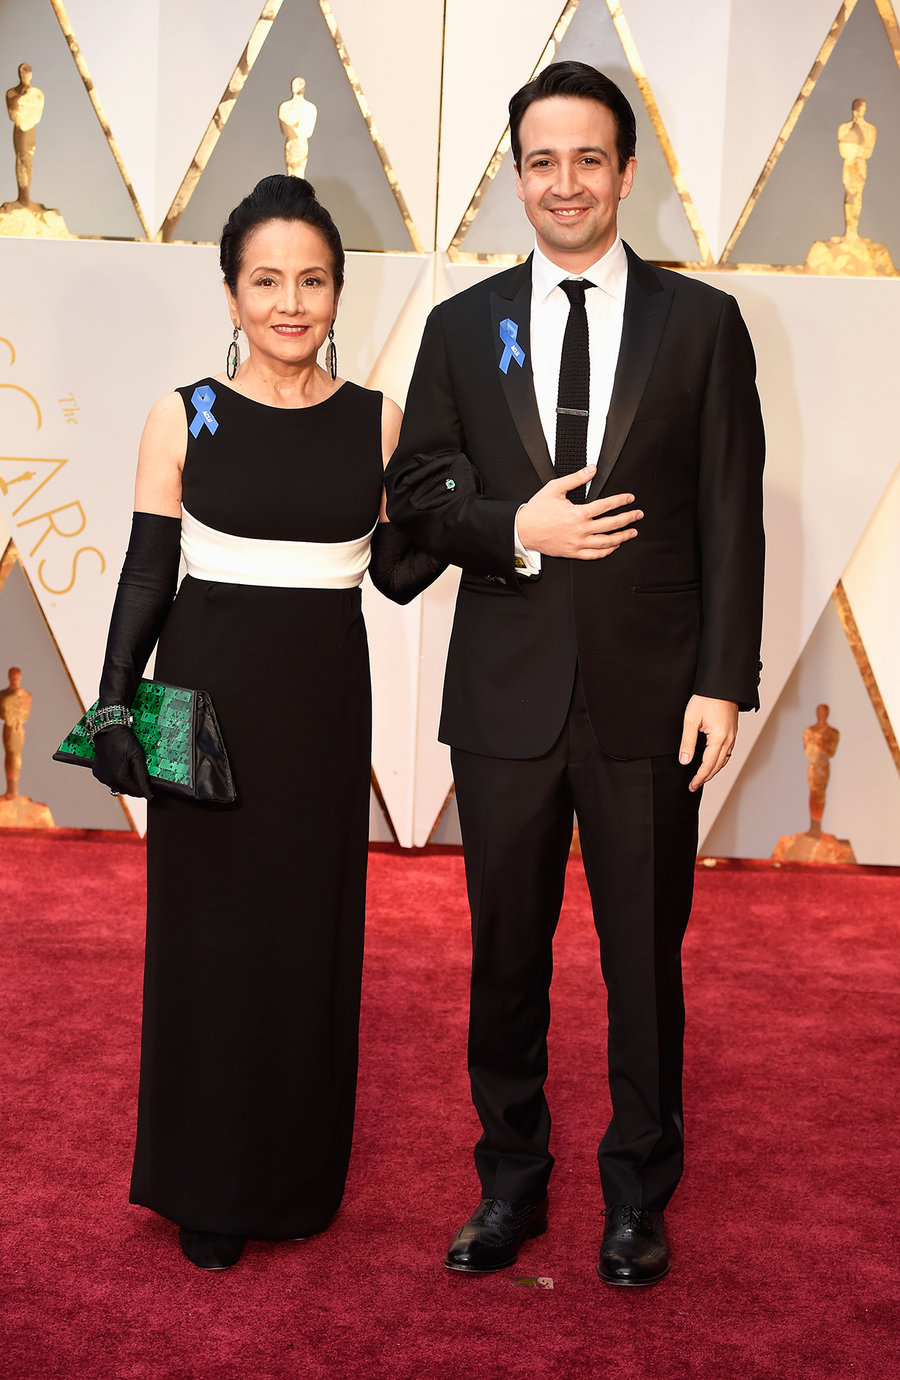 Lin-Manuel Miranda (right) and his mother, Luz Towns-Miranda, sport blue ACLU pins at Sunday's Oscars. (Photo: Getty Images)